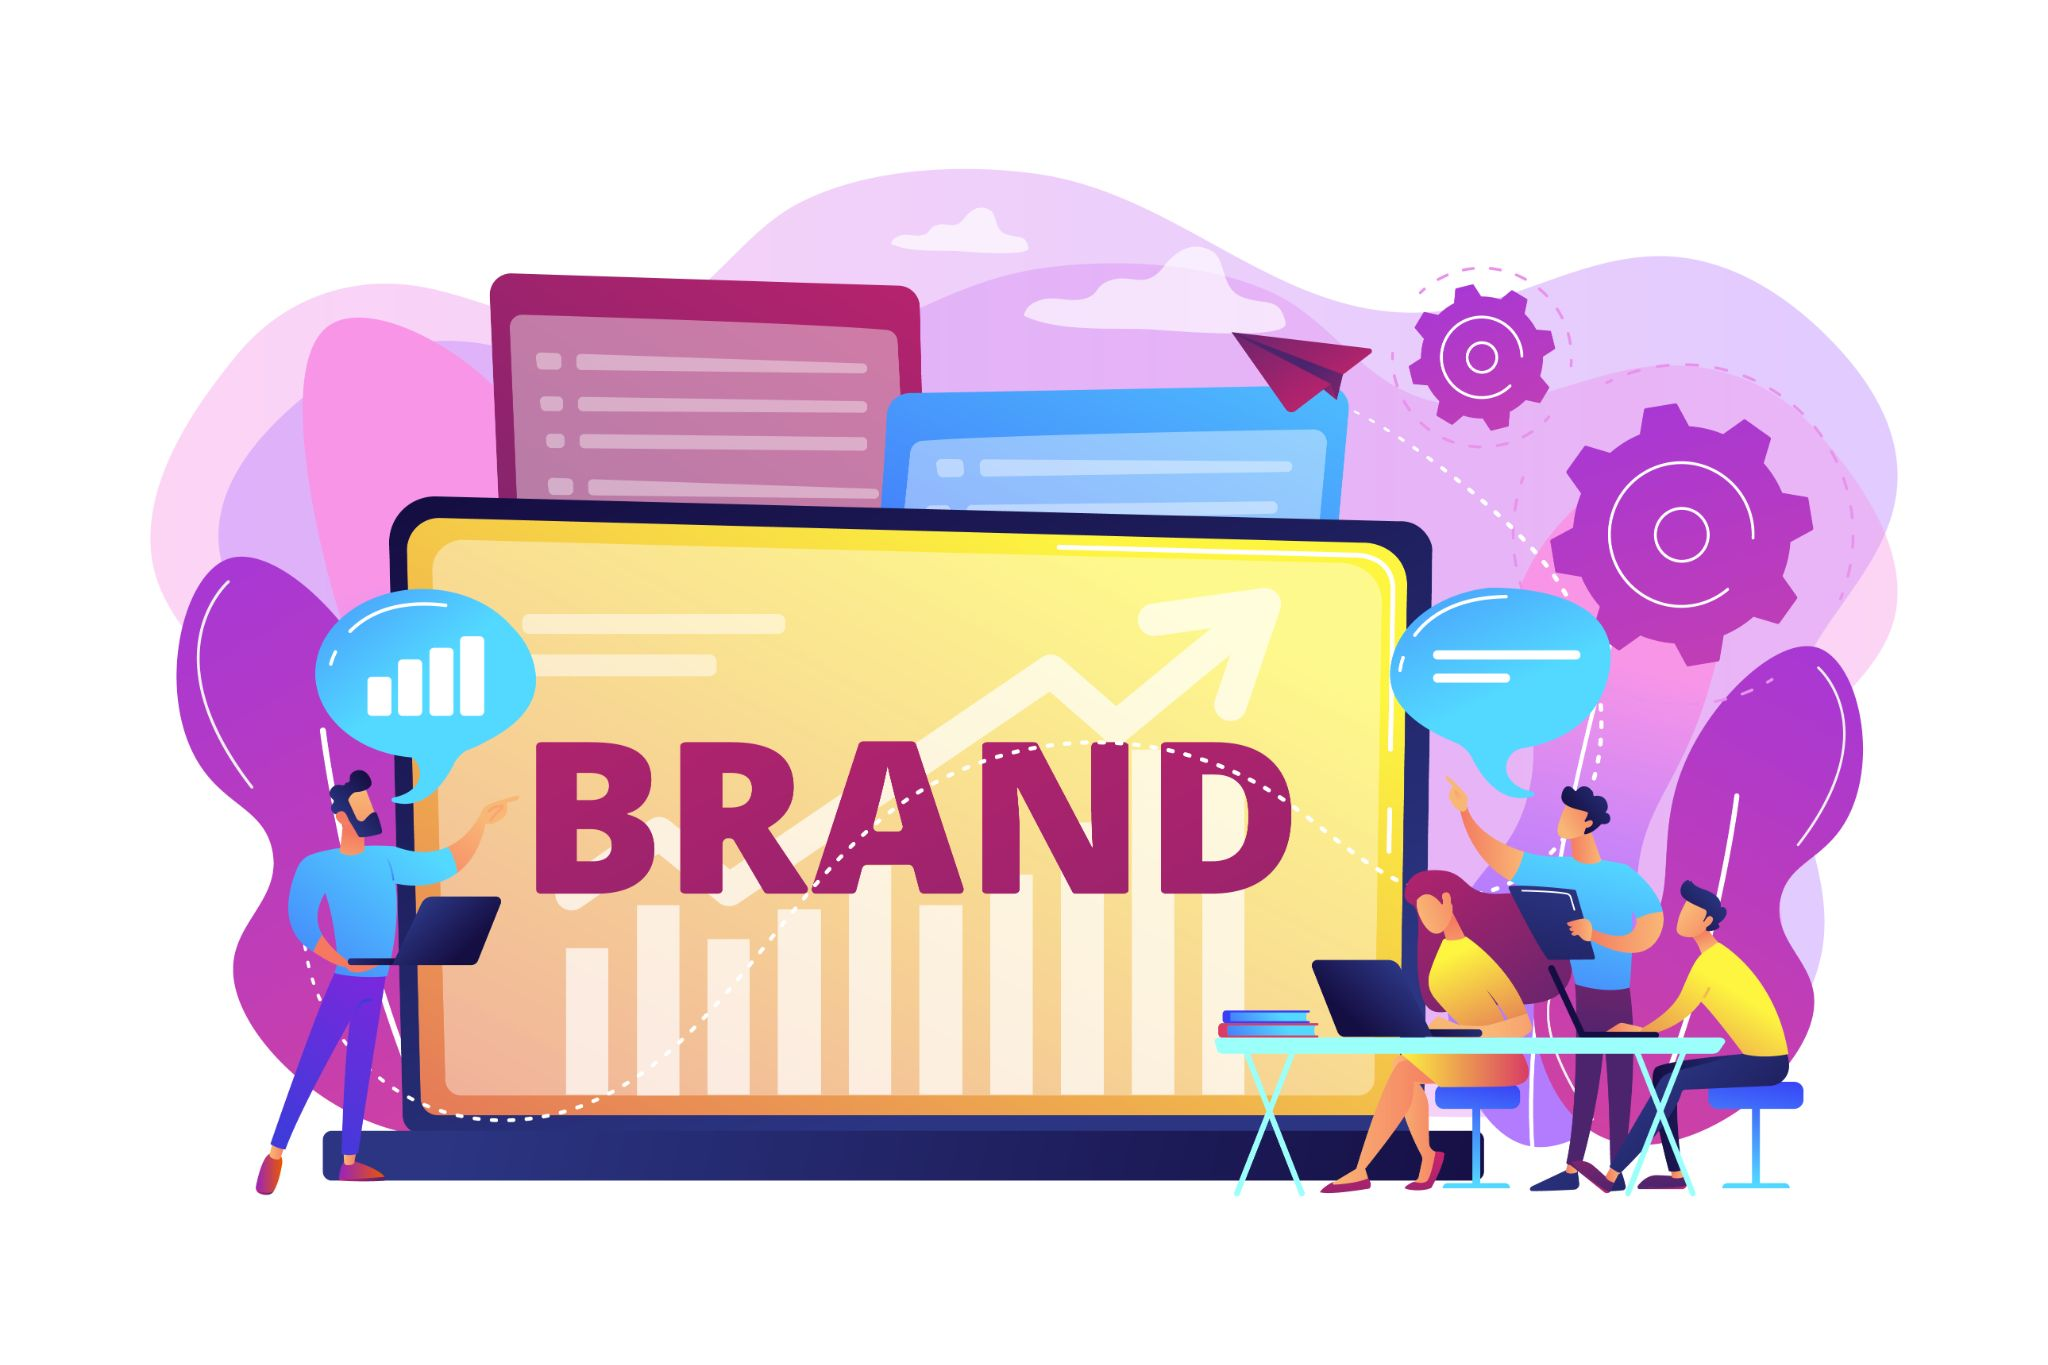 An infographic showing people working on a brand.